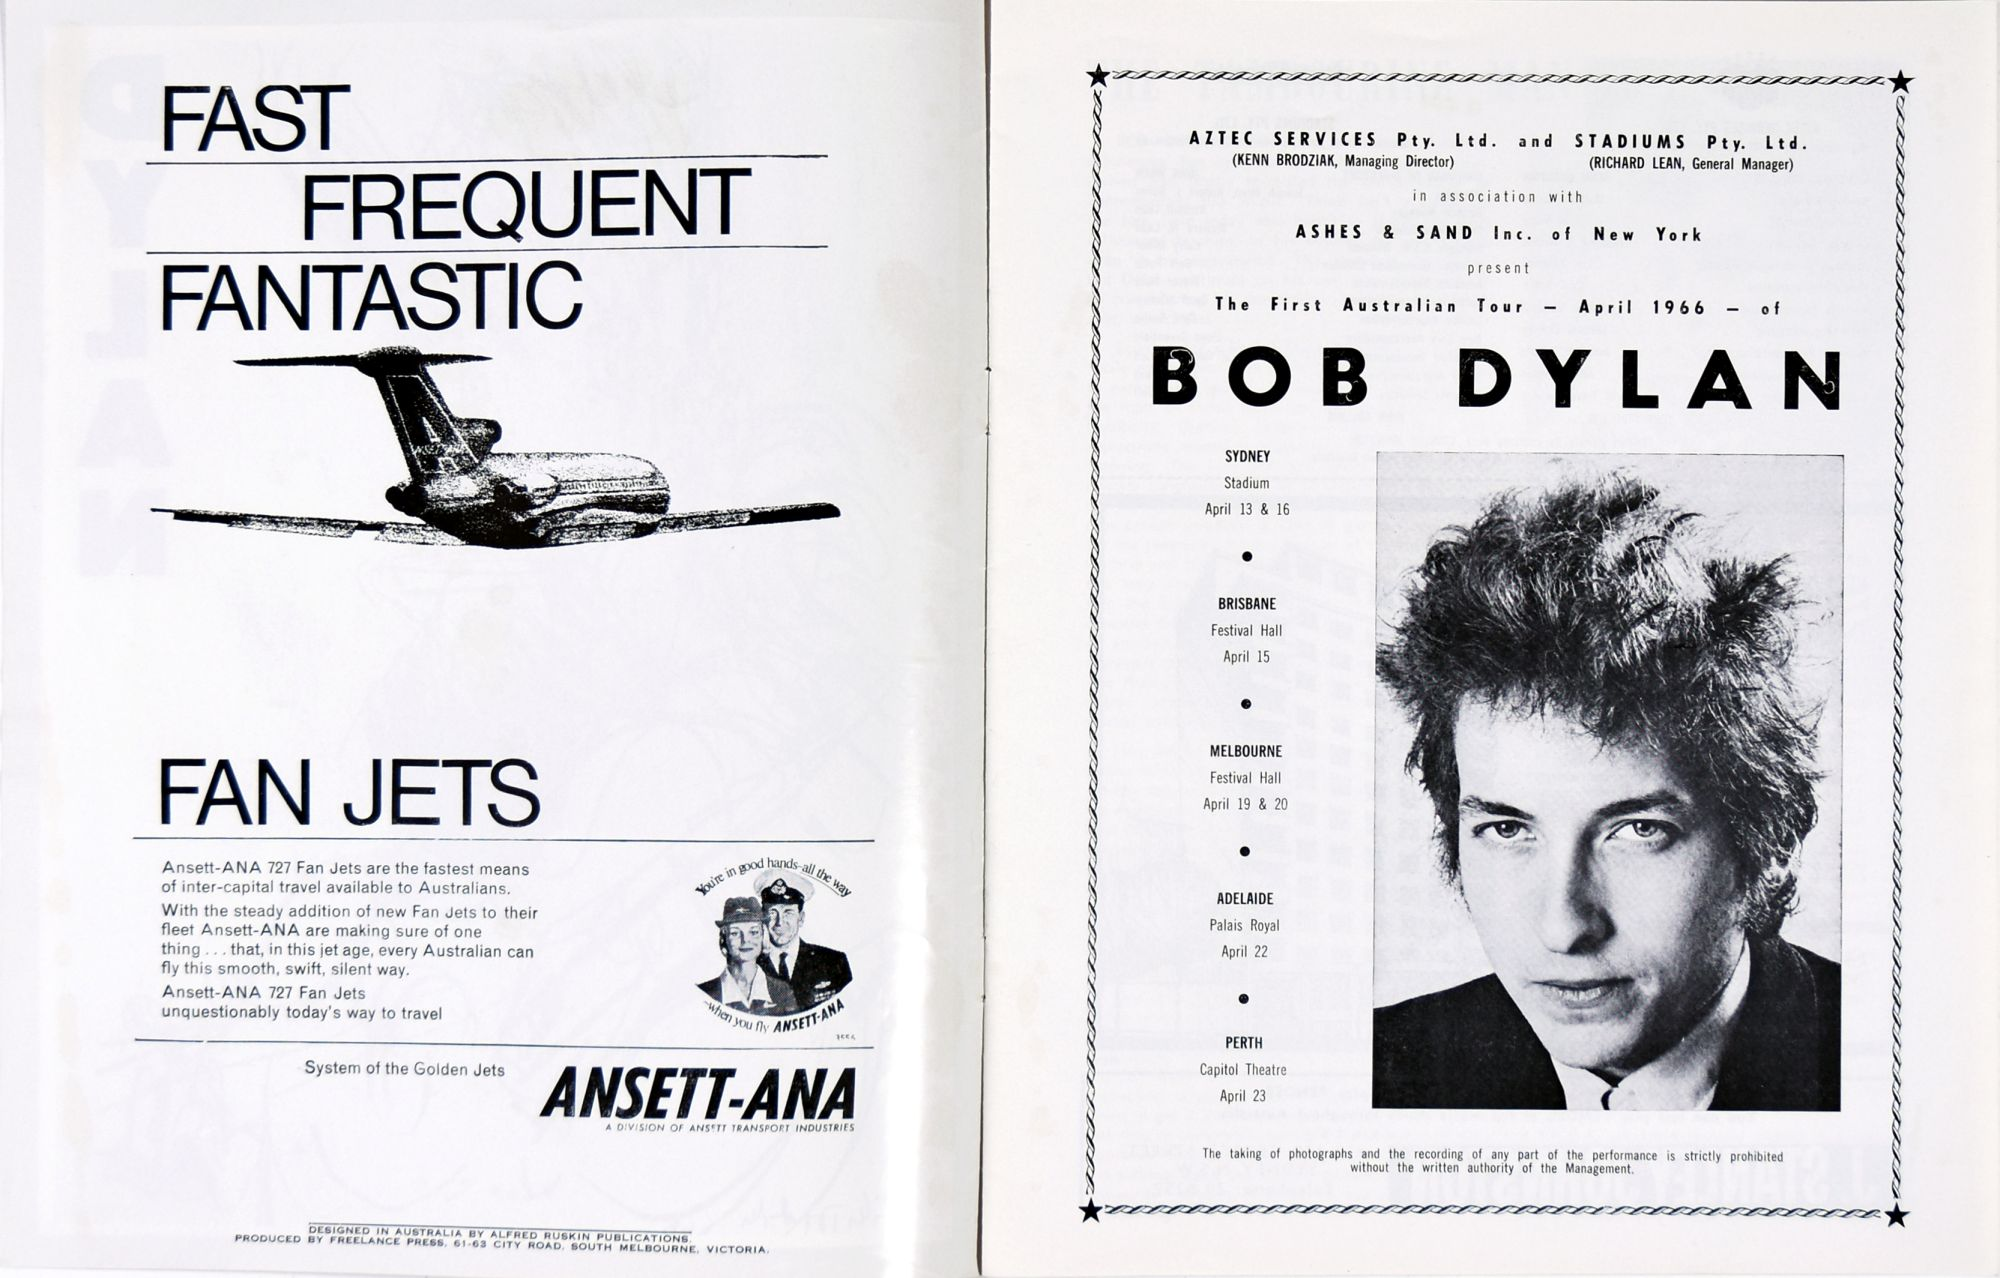 Bob Dylan australia 1966 Programme inner pages